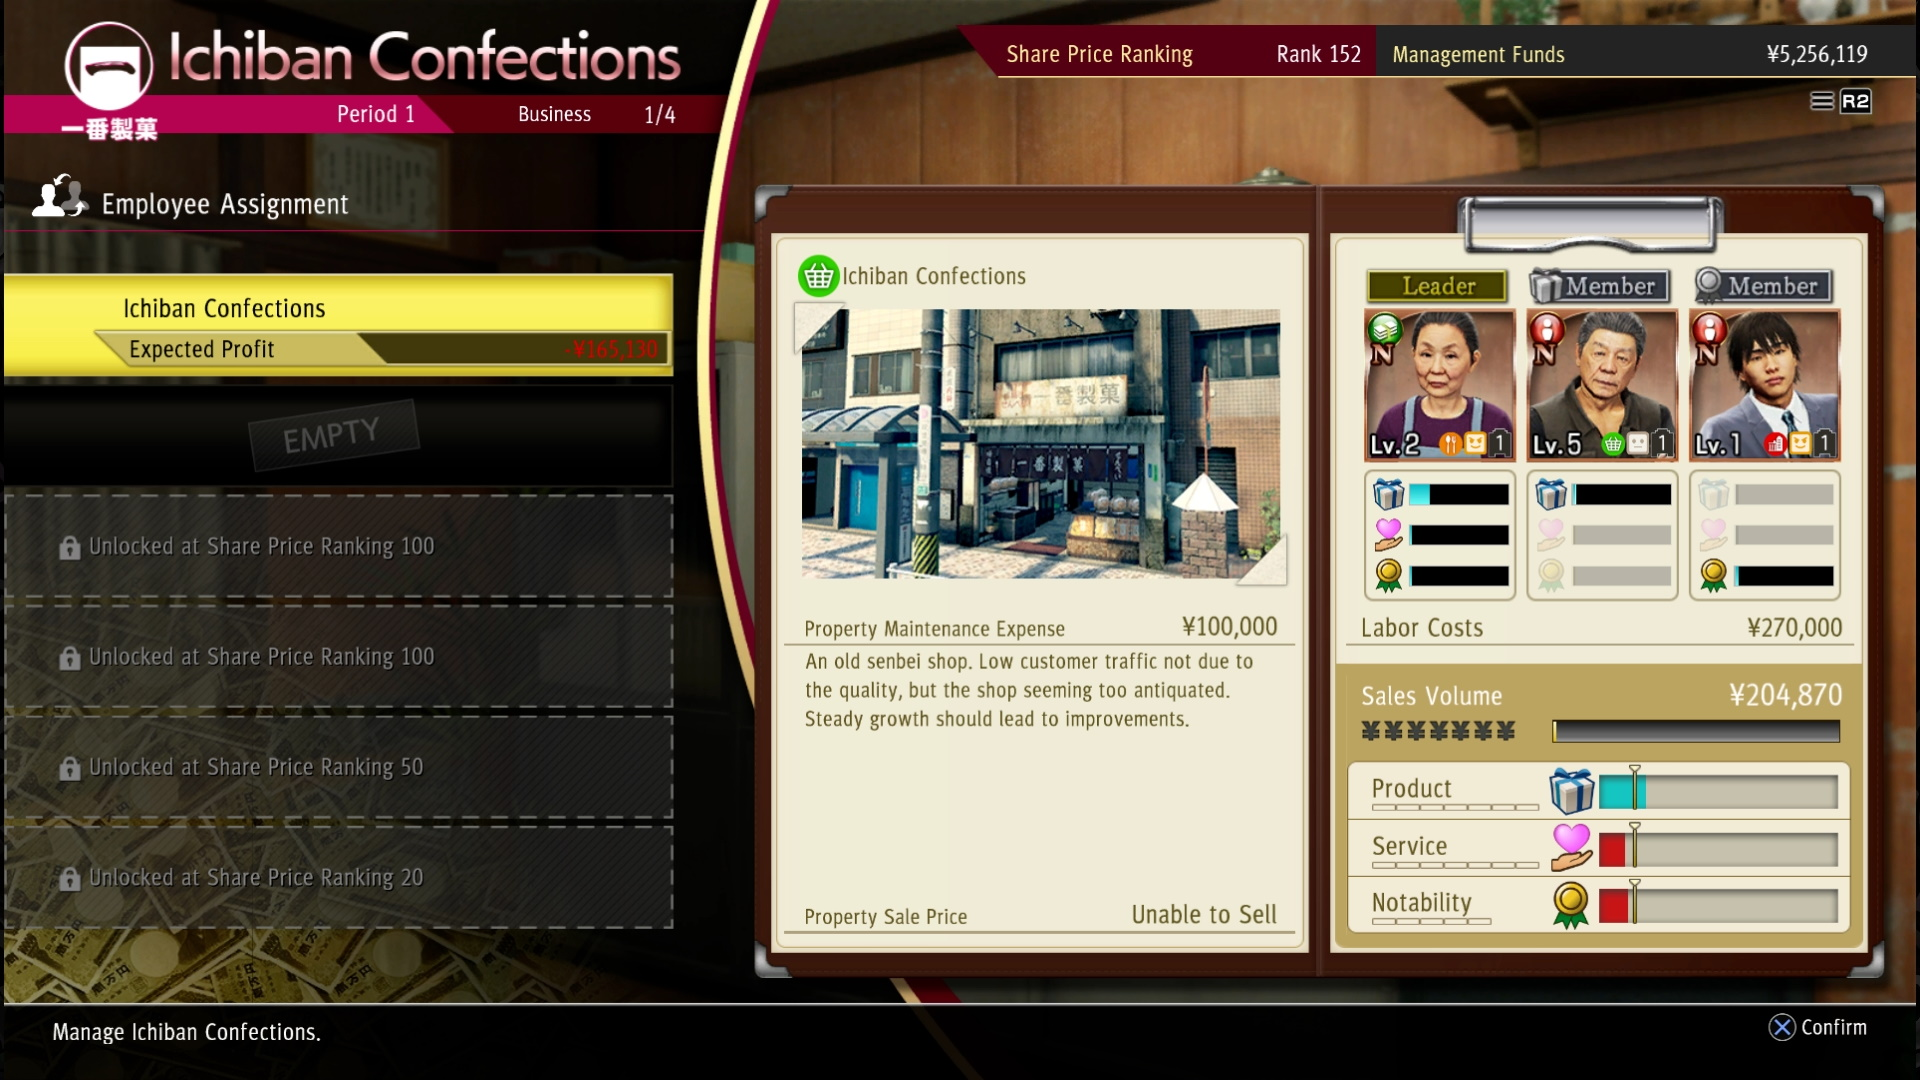 A screen which shows Ichiban Confections' stats.